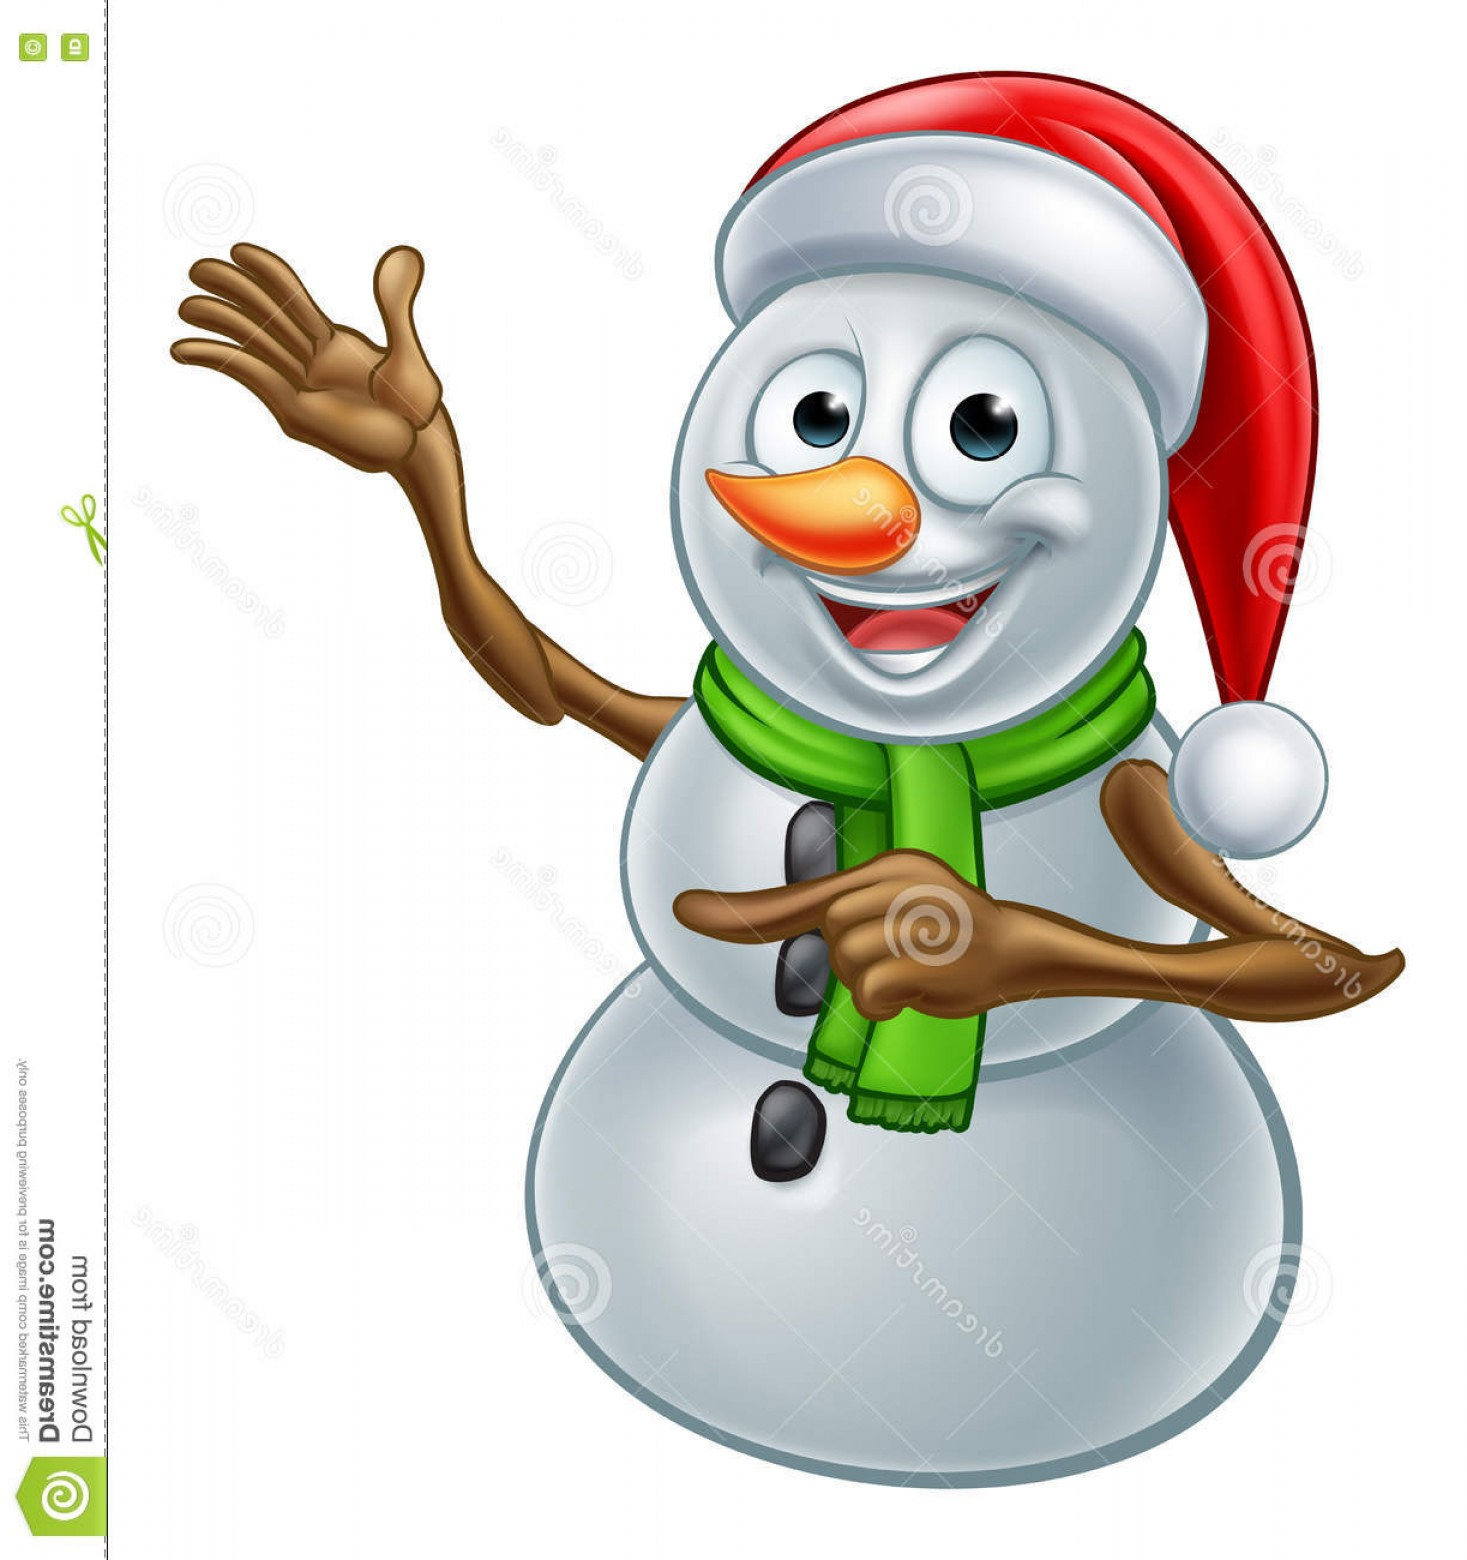 No Hat With Snowman Vector: Stock Illustration Christmas Snowman Cartoon Santa Hat Character Pointing Happy Image